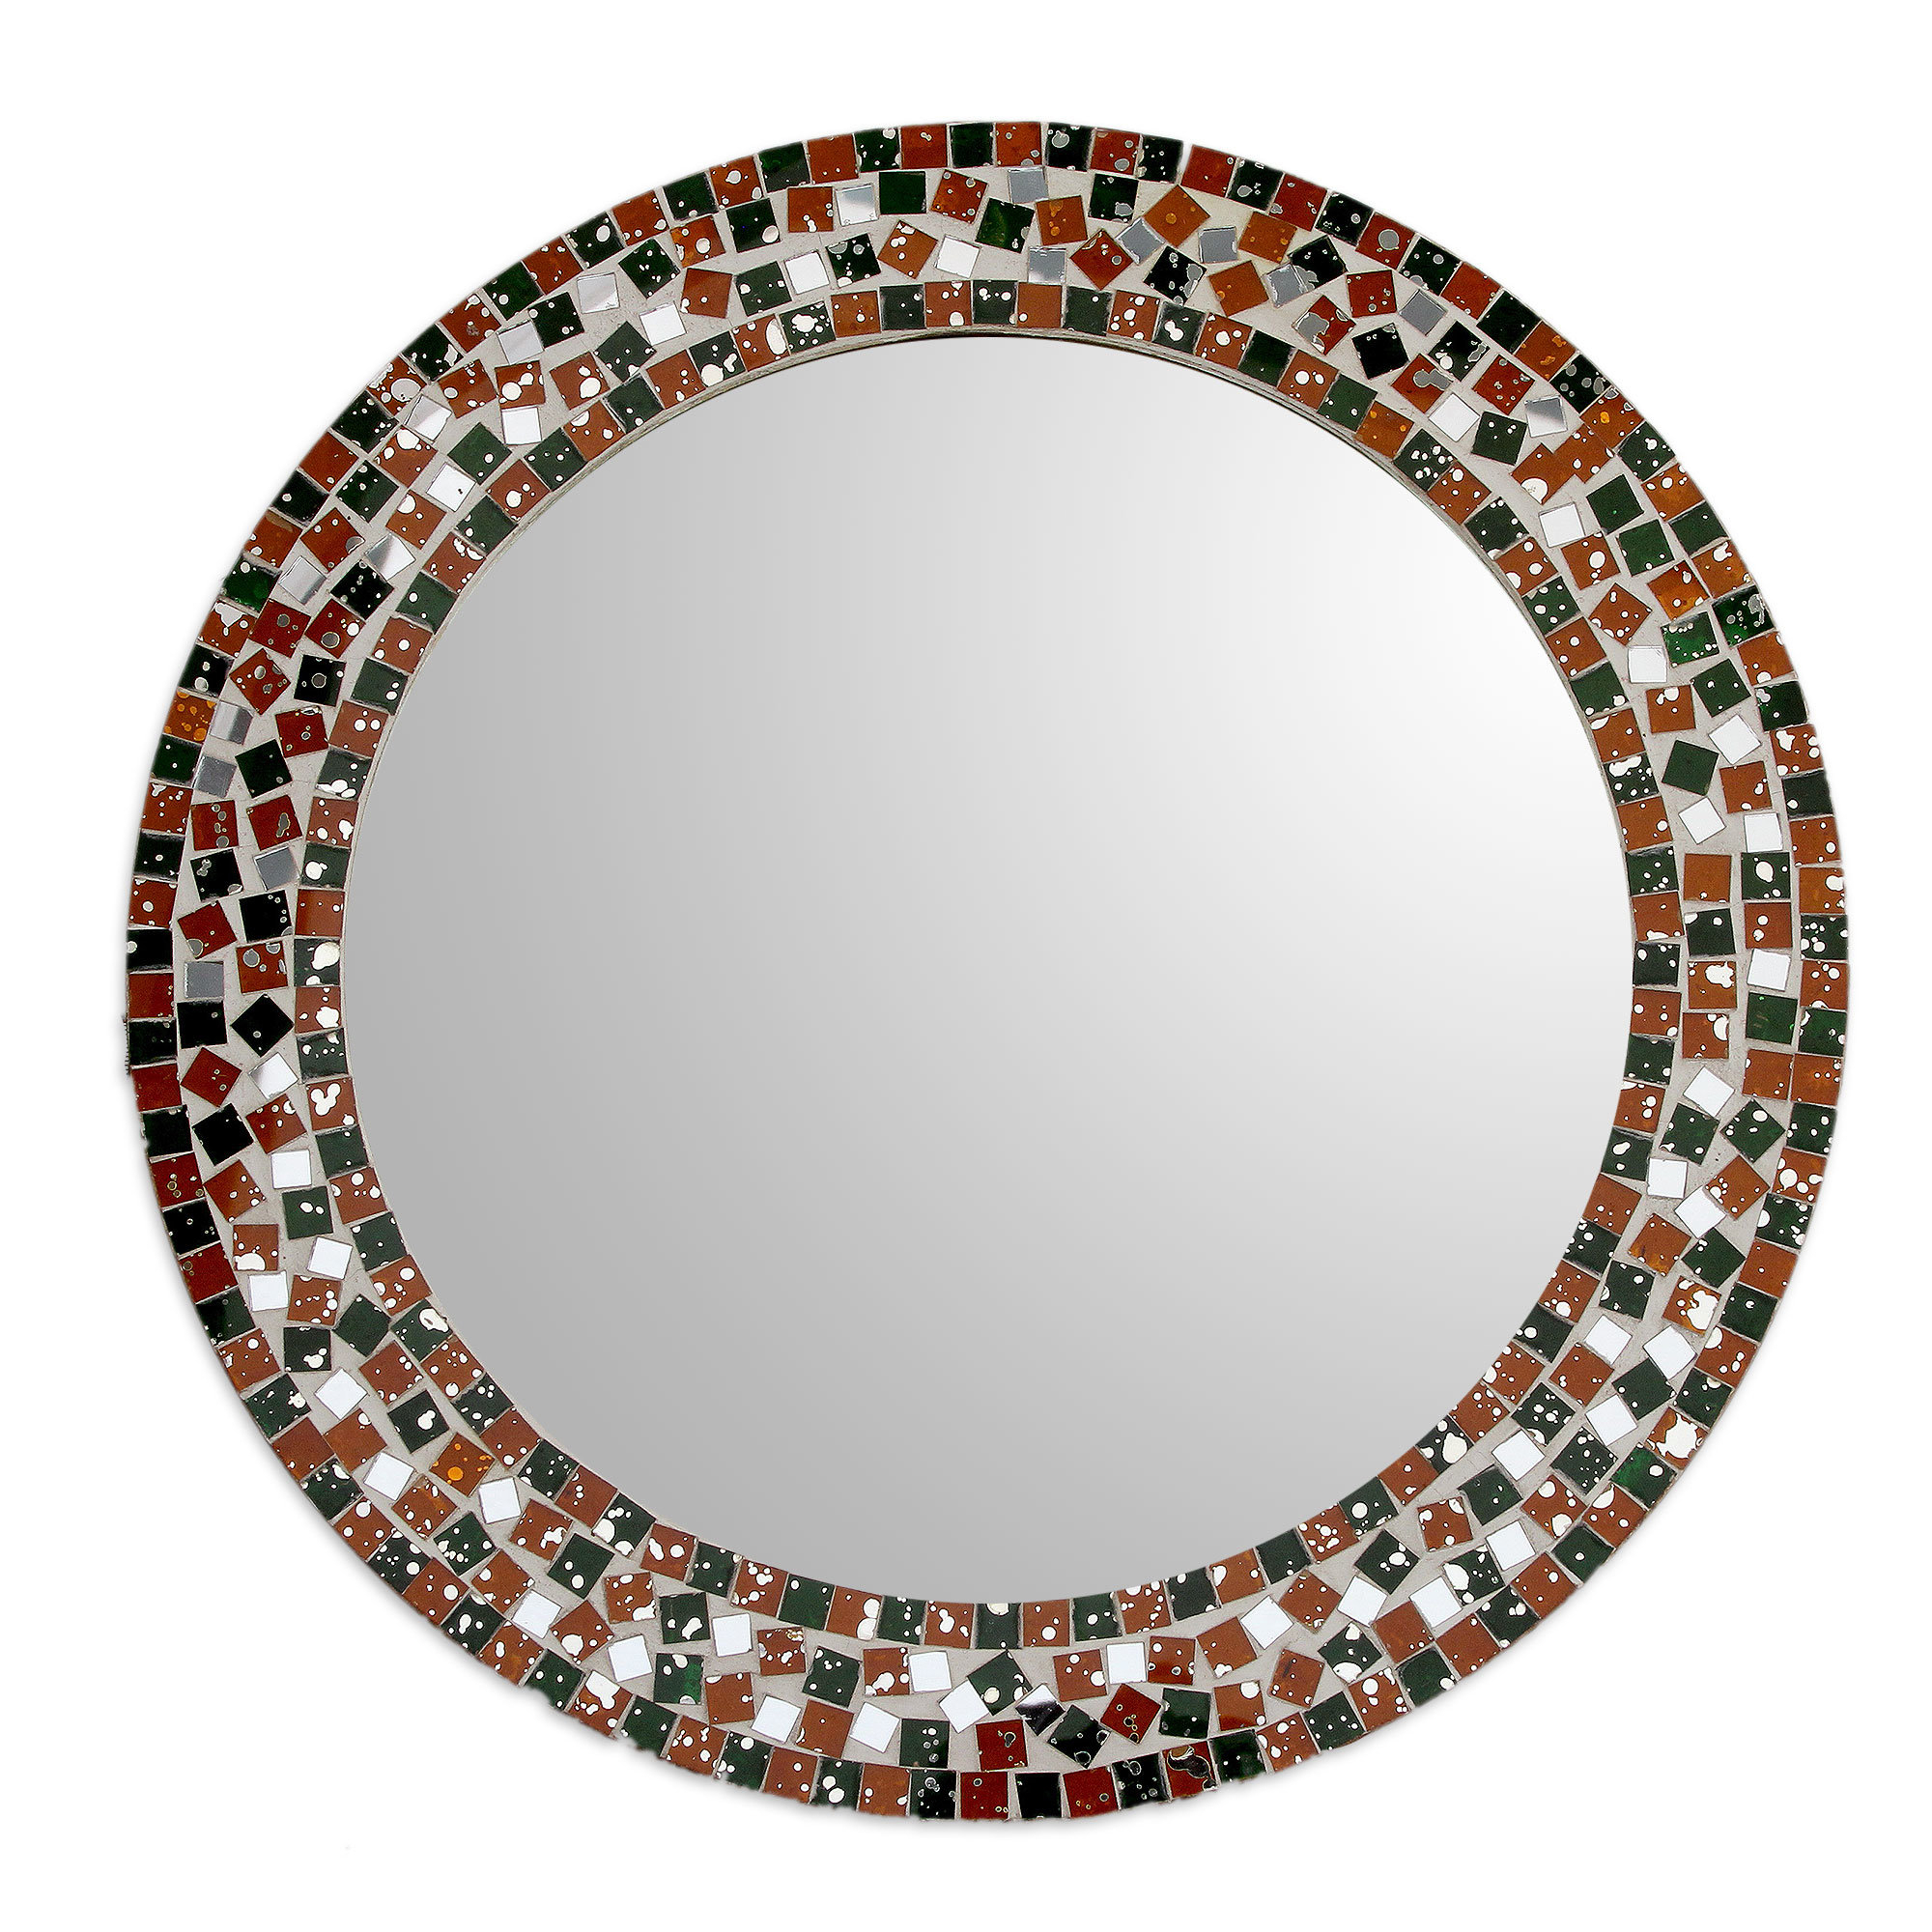 Latest Forest Mosaic Artisan Crafted Round Wall Mirror With Regard To Round Mosaic Wall Mirrors (Gallery 11 of 20)